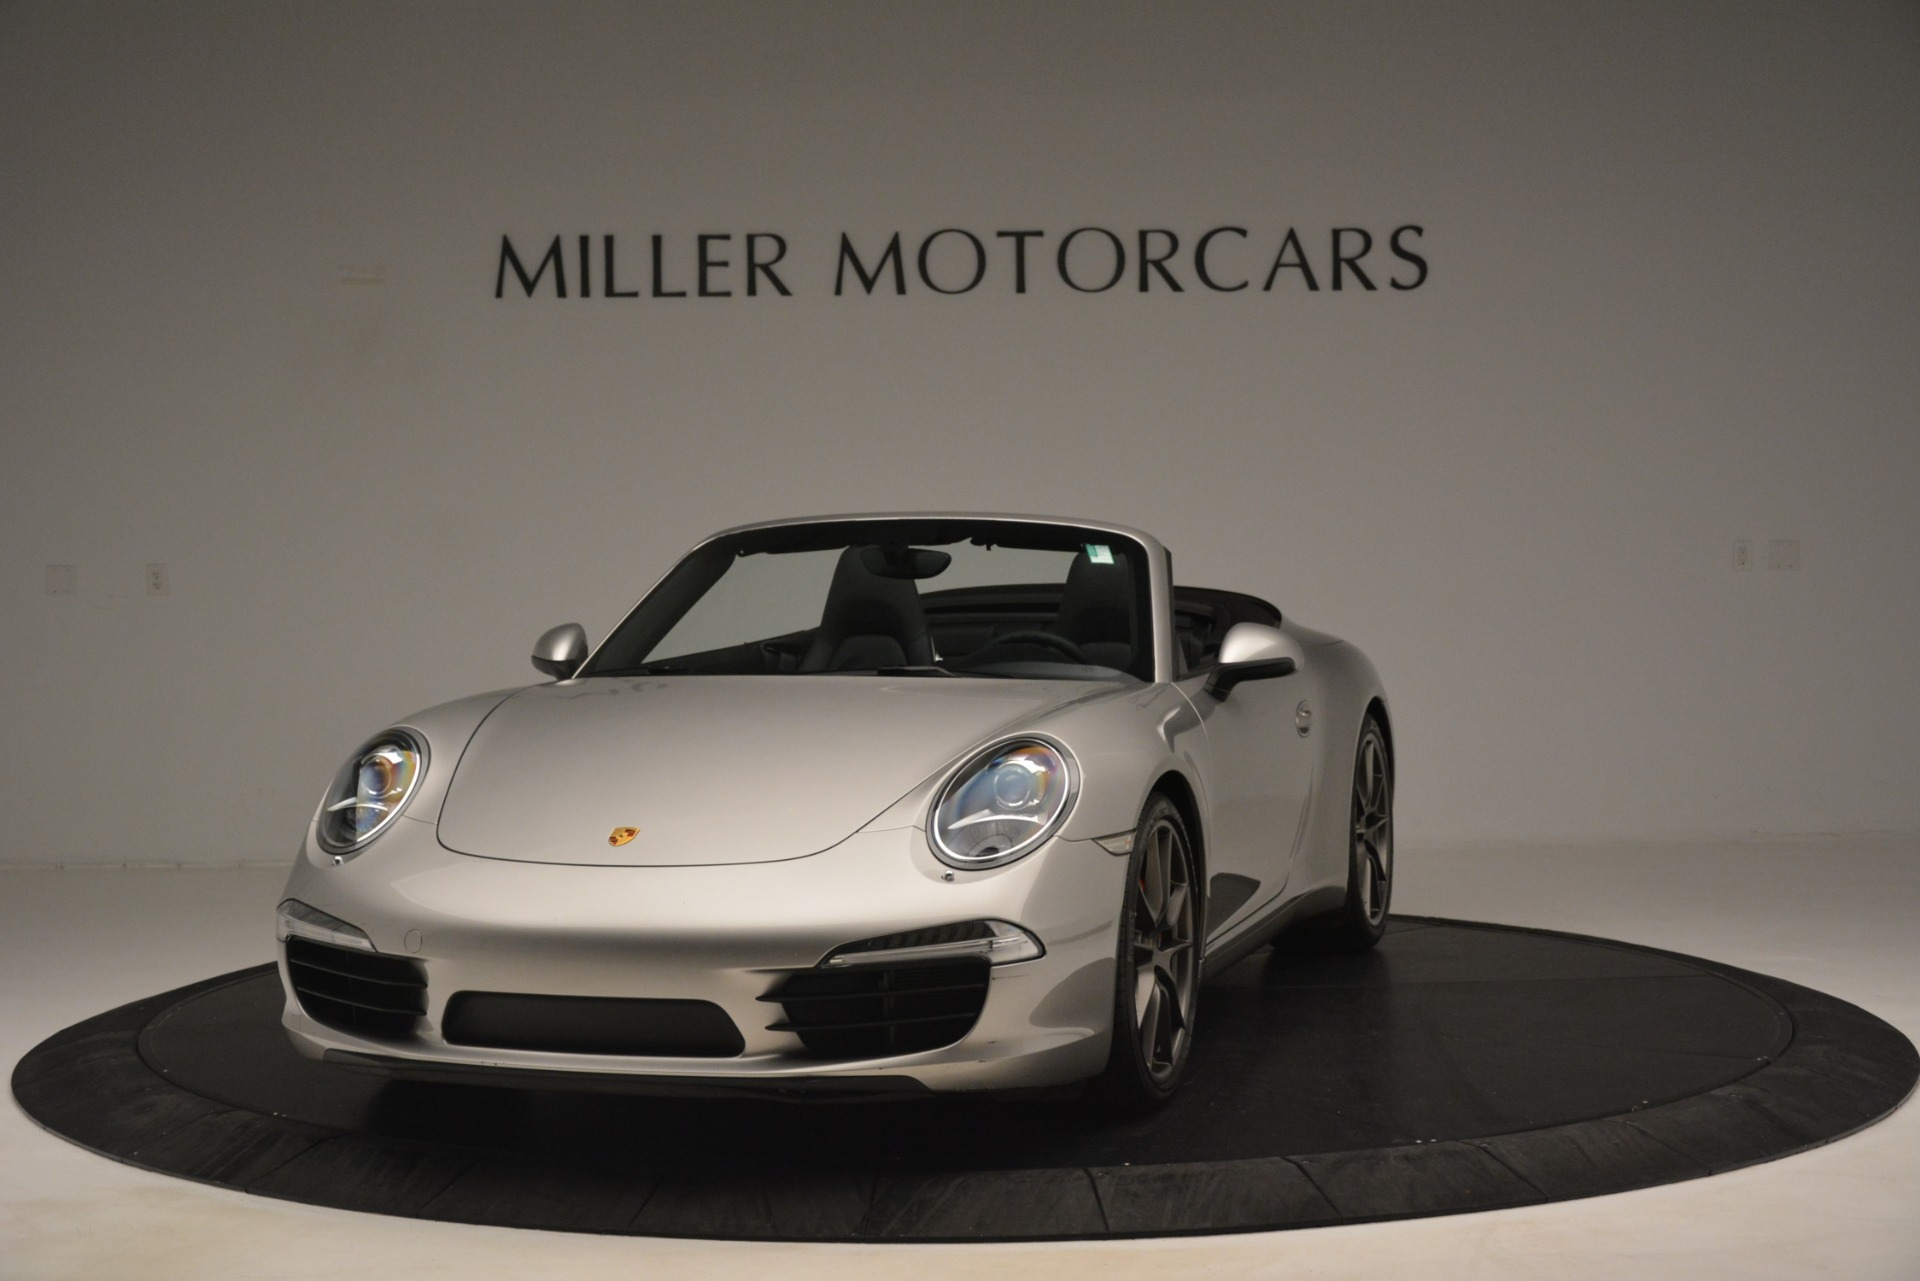 Used 2013 Porsche 911 Carrera S for sale Sold at Aston Martin of Greenwich in Greenwich CT 06830 1